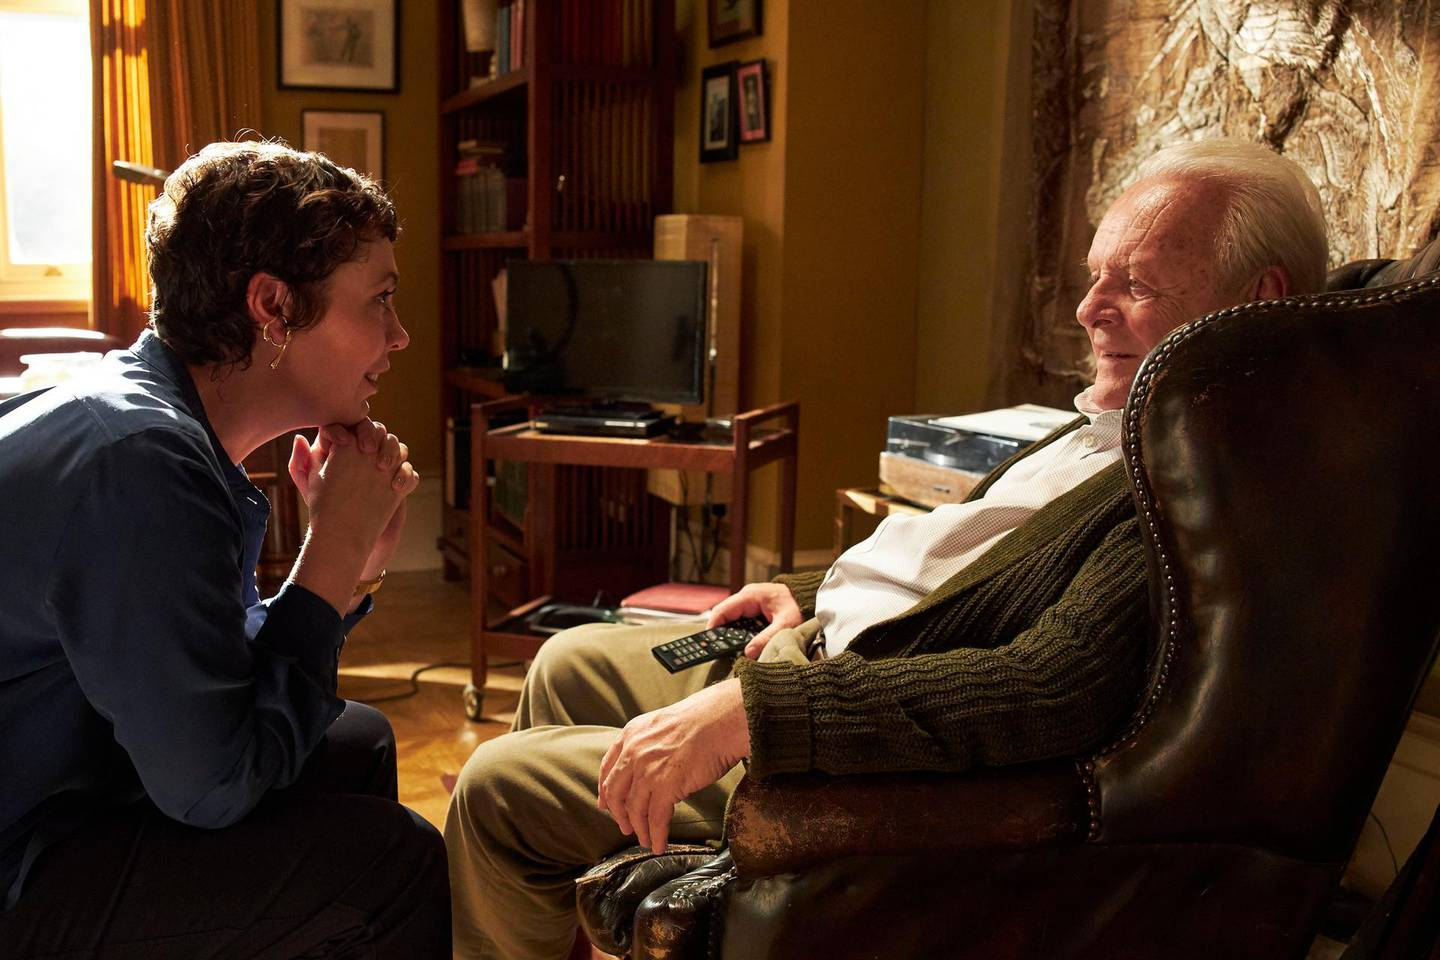 """This image released by Sony Pictures Classics shows Olivia Colman, left, and Anthony Hopkins in a scene from """"The Father."""" On Wednesday, Feb. 3, 2021 the film was nominated for a Golden Globe for best motion picture drama. (Sean Gleason/Sony Pictures Classics via AP)"""